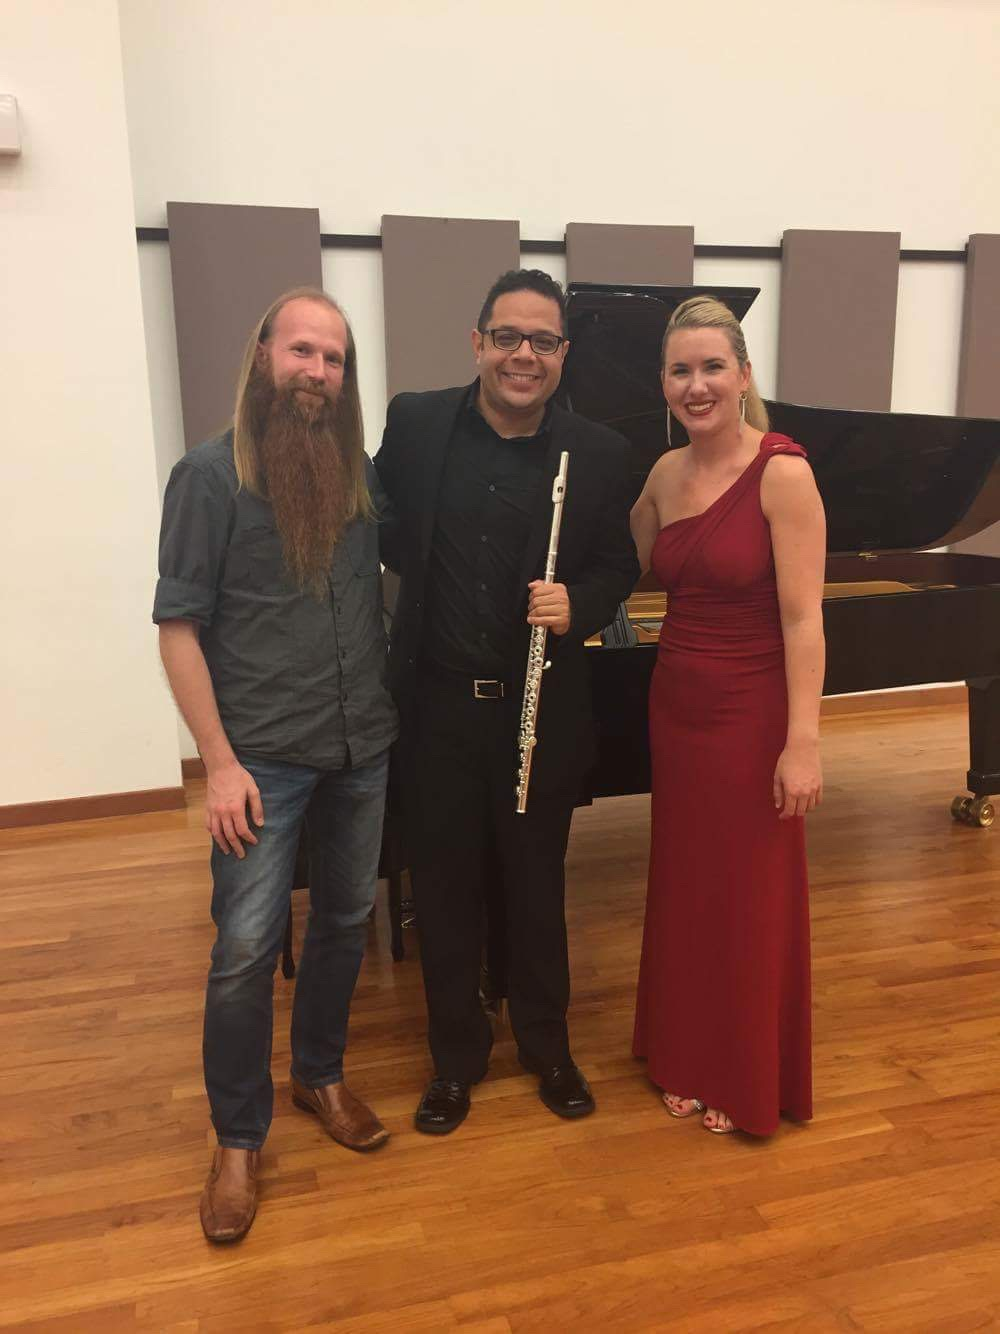 Composer Nick Omiccioli and pianist Lindsay Garritson - Singapore, 2017